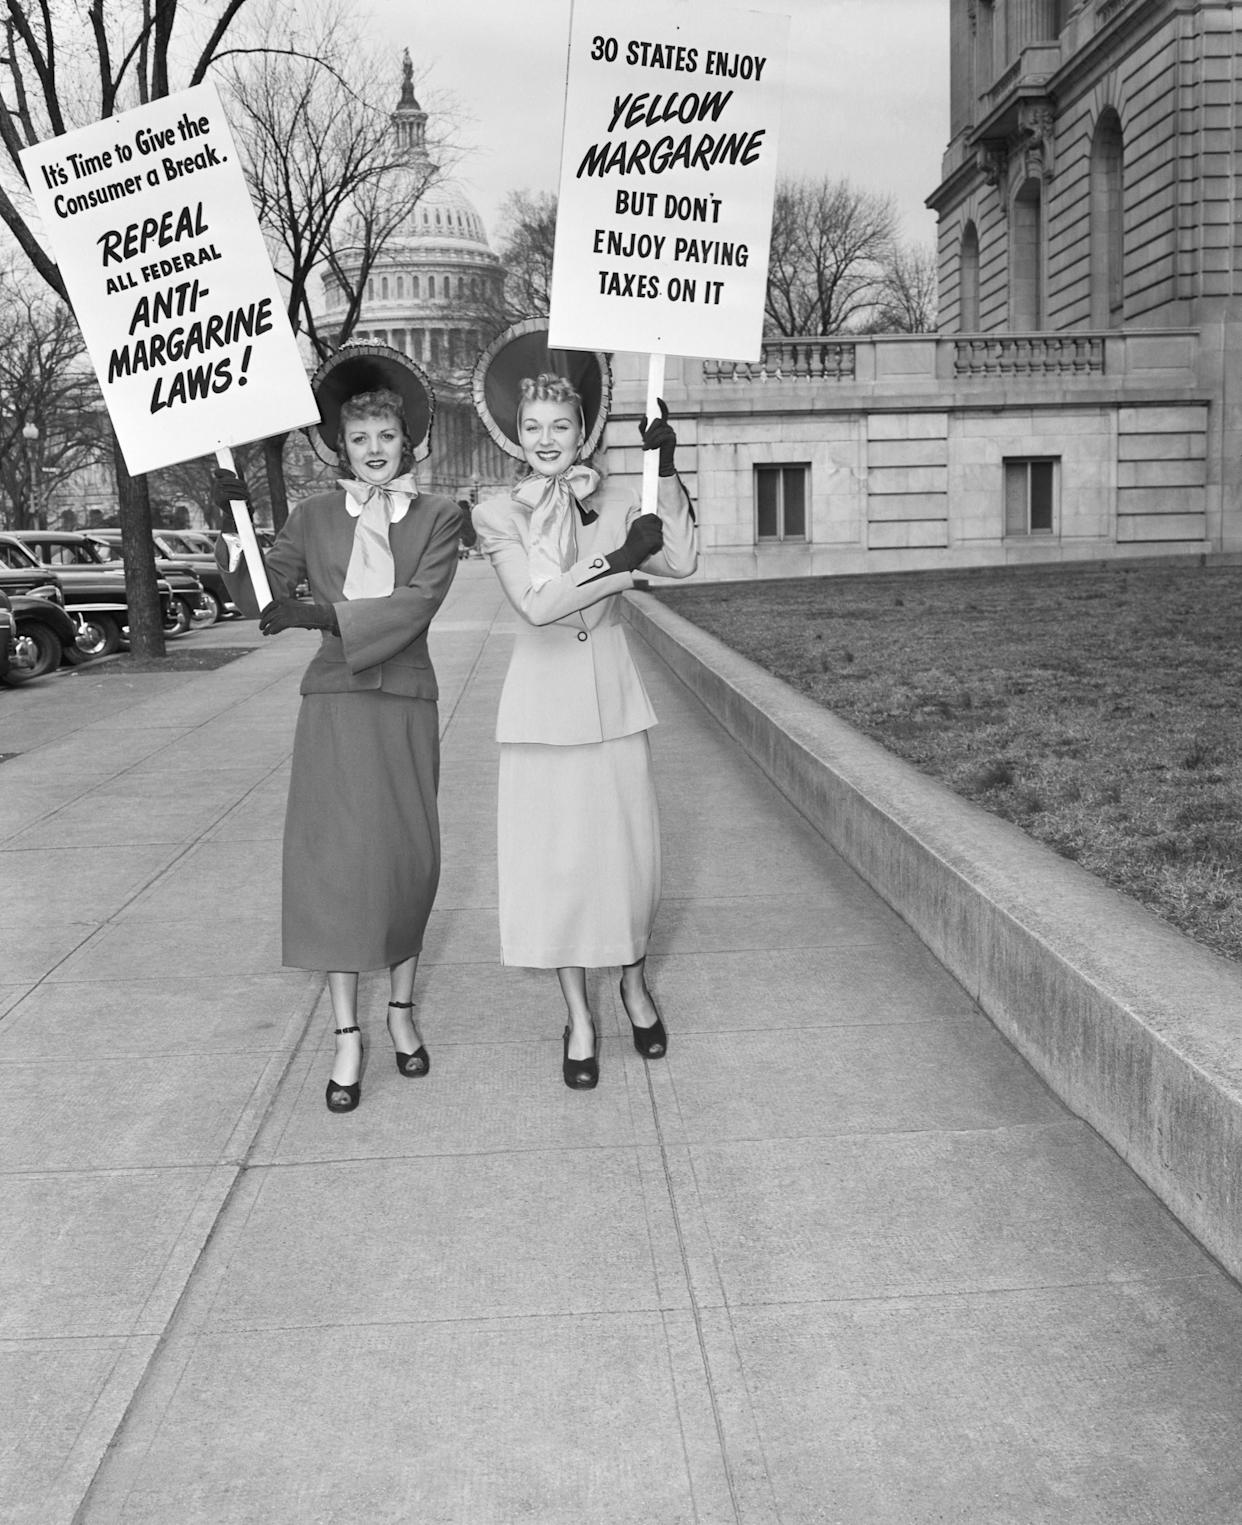 Two housewives in gay blue bonnets, Mrs. J.C. Alicoate (L) of Miami, and Mrs. Arthur Hebb, Jr. of Baltimore, add their bit towards the fight for repeal of the tax on oleomargarine. They parade with their signs near the Capitol in Washington, D.C. on March 3, 1949.